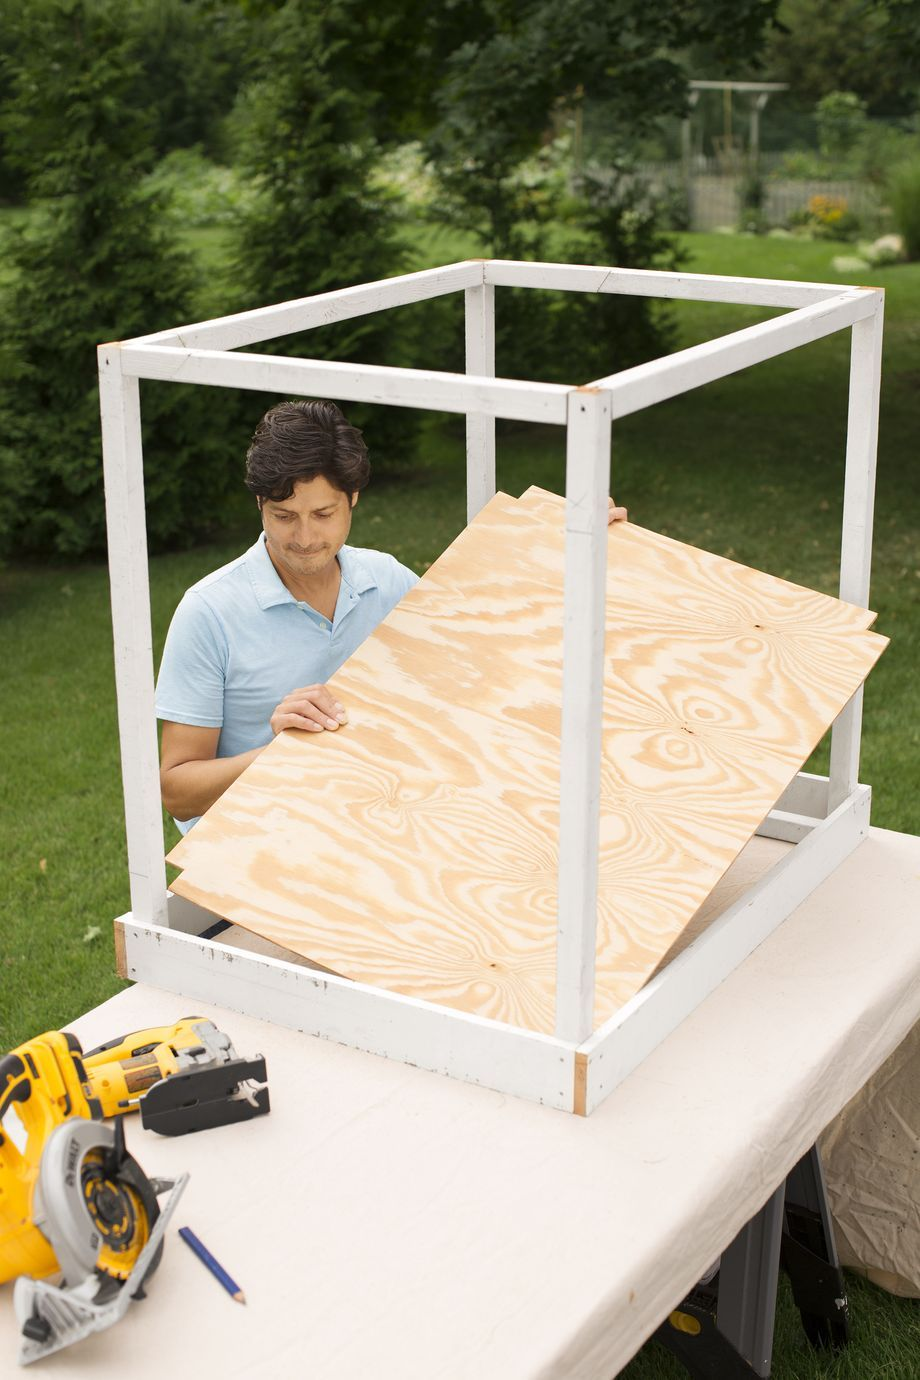 How to Build a Catio in 2020 Screened in patio, Cat